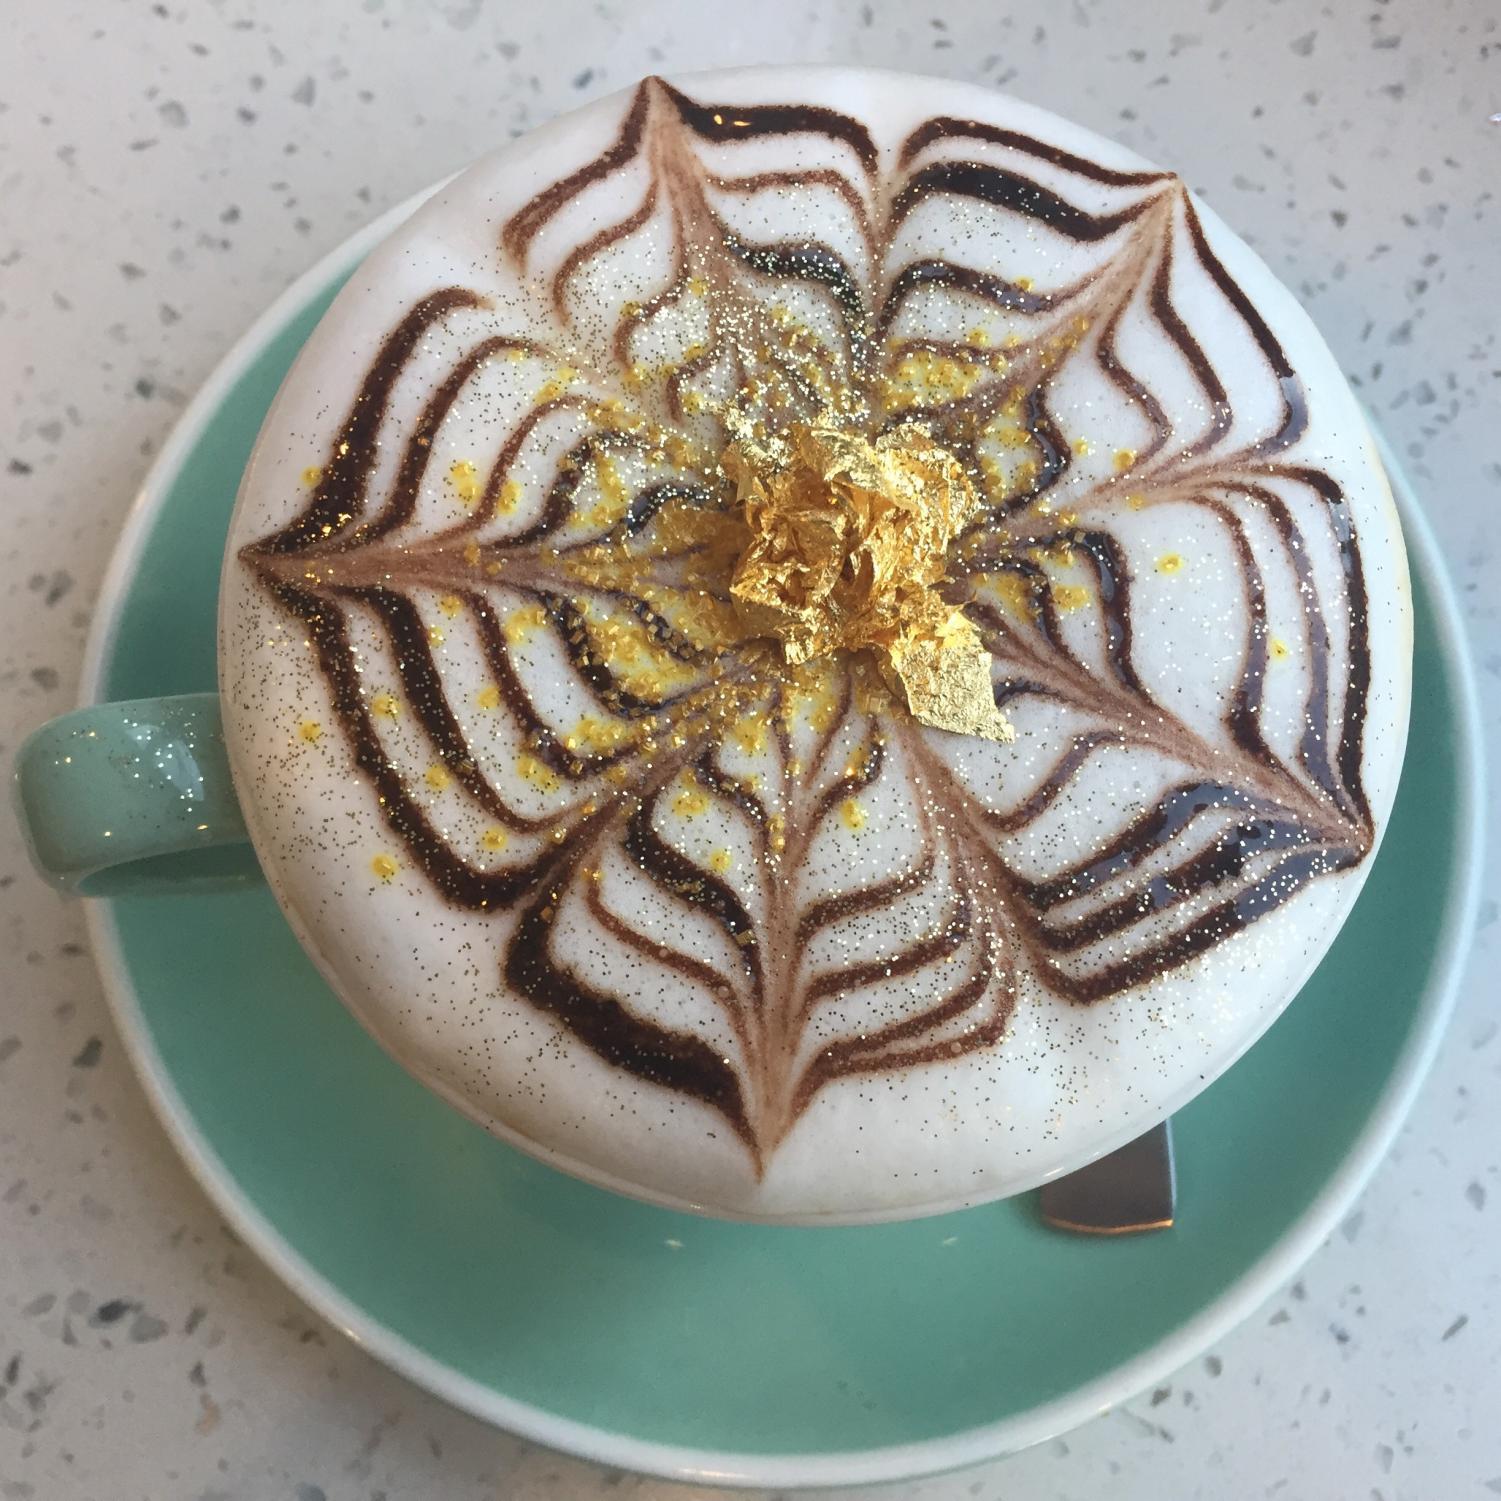 S3 provides a little bling on floating on top of the 24k Cappuccino, made with cookie butter.